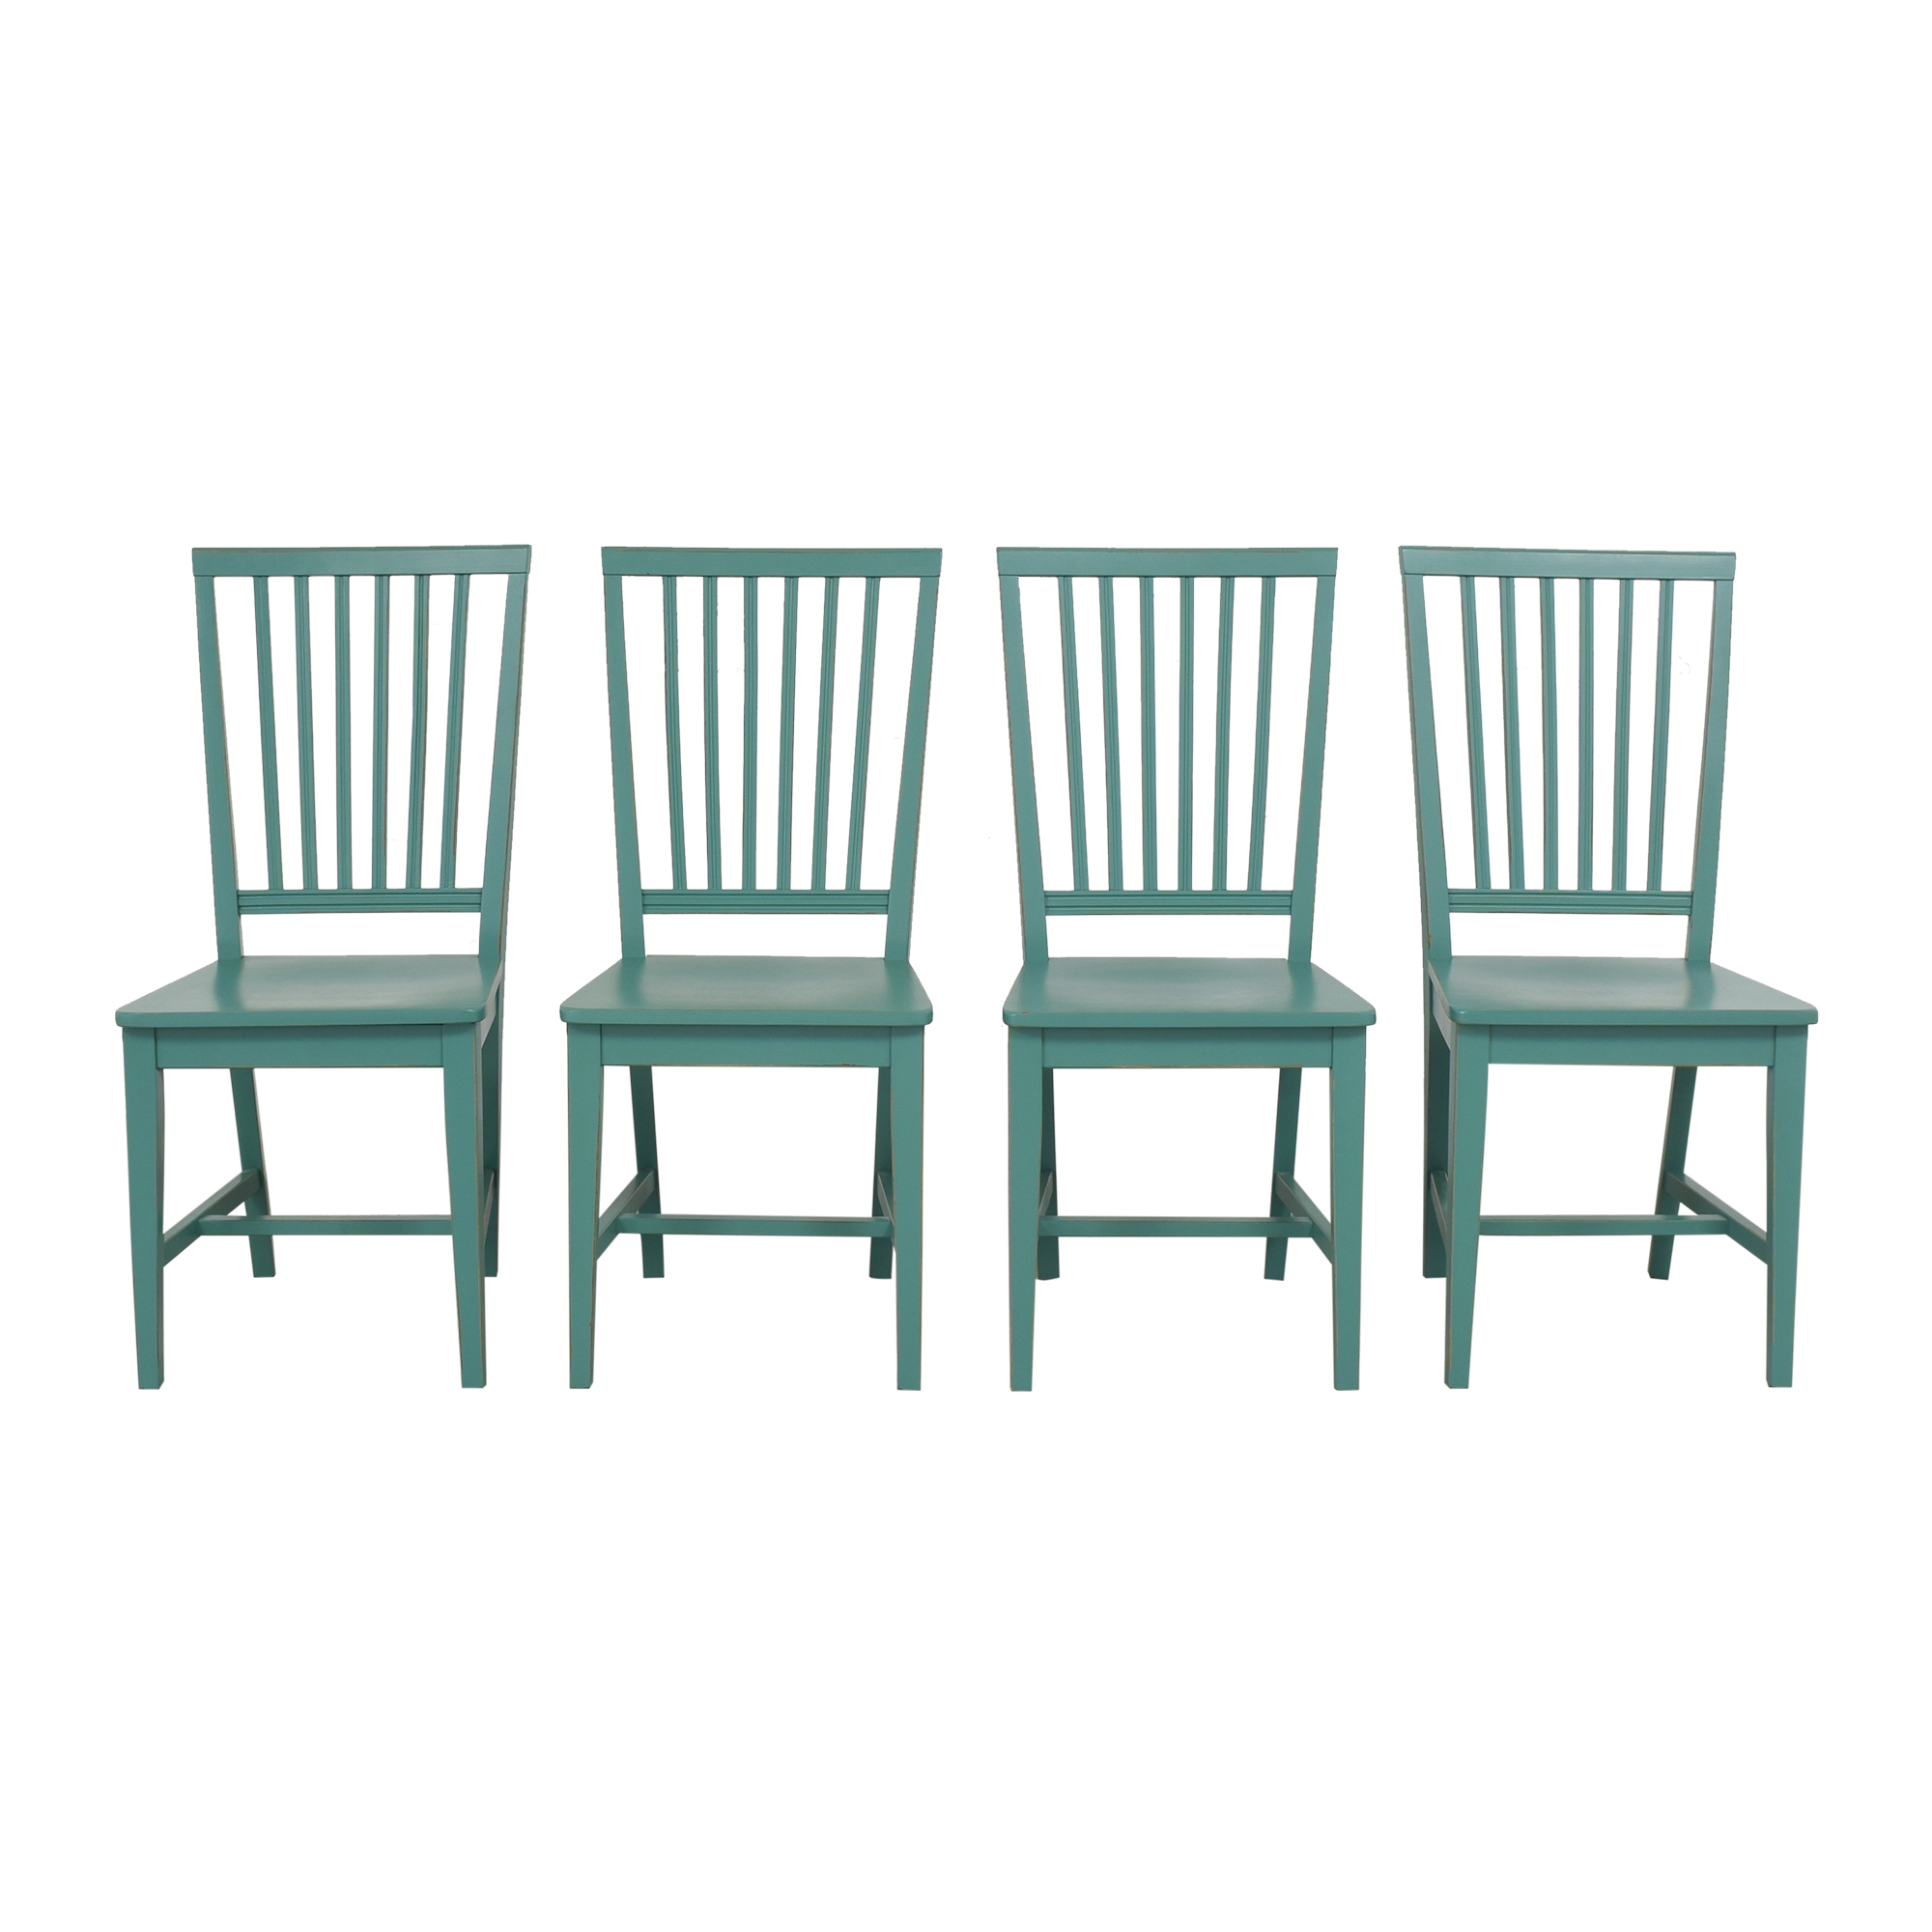 Crate & Barrel Village Dining Chairs / Chairs